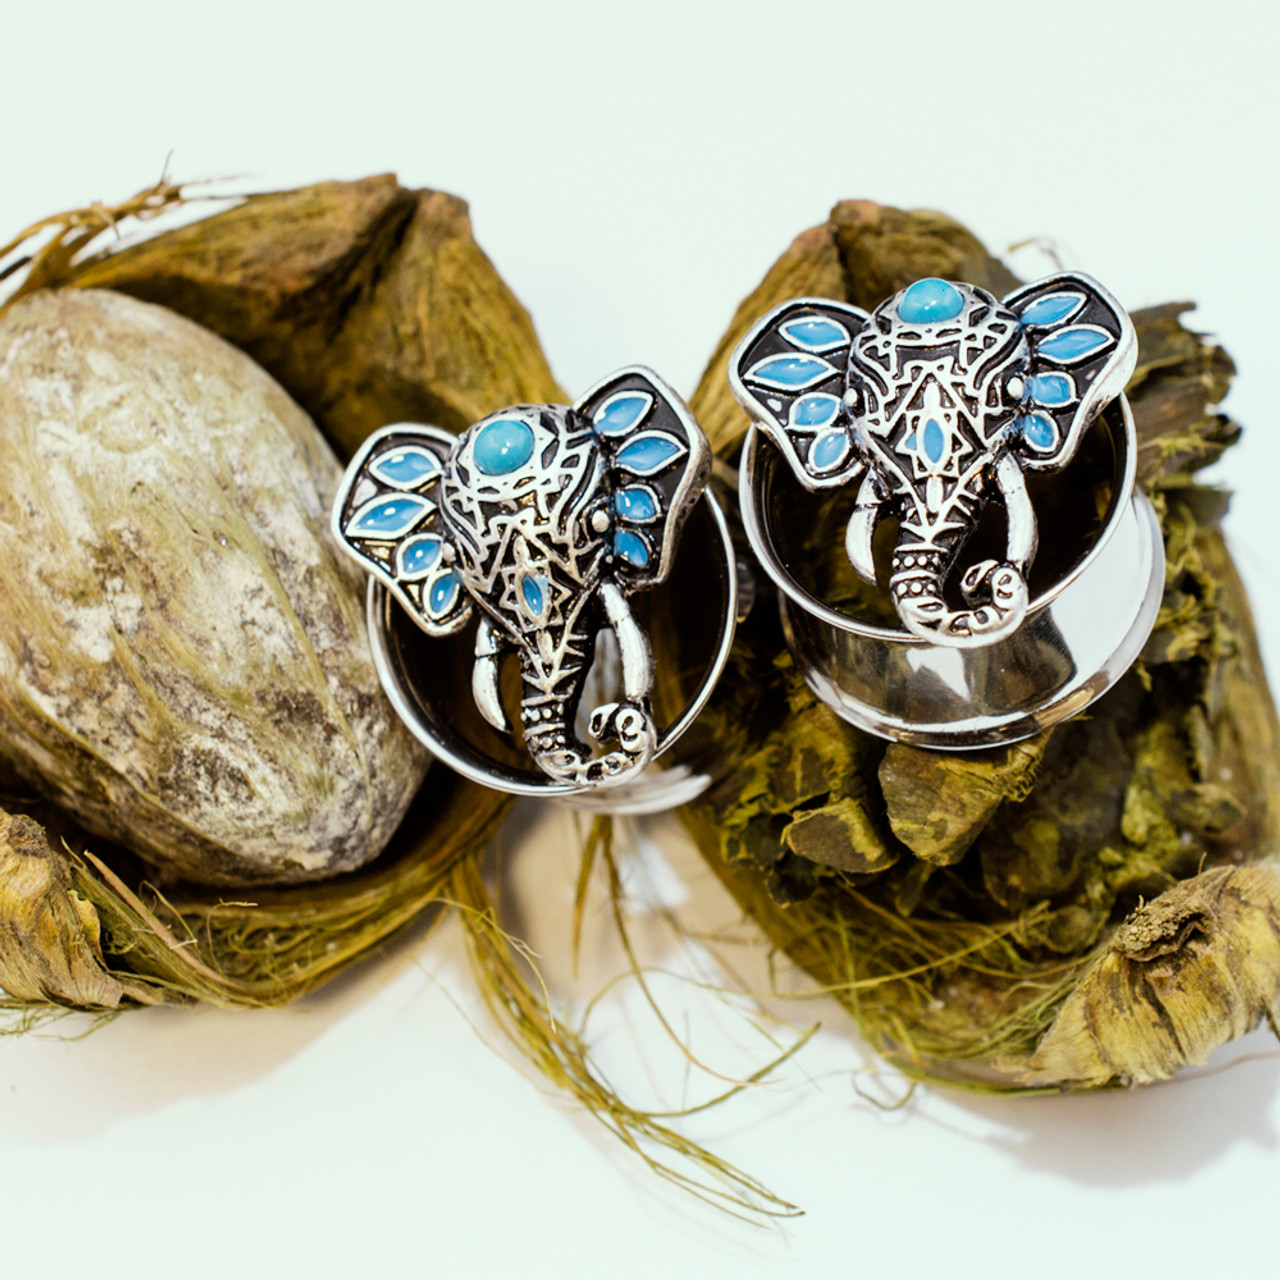 Ear Plugs Lucky Elephant Double Flare with Turquoise Embellishments